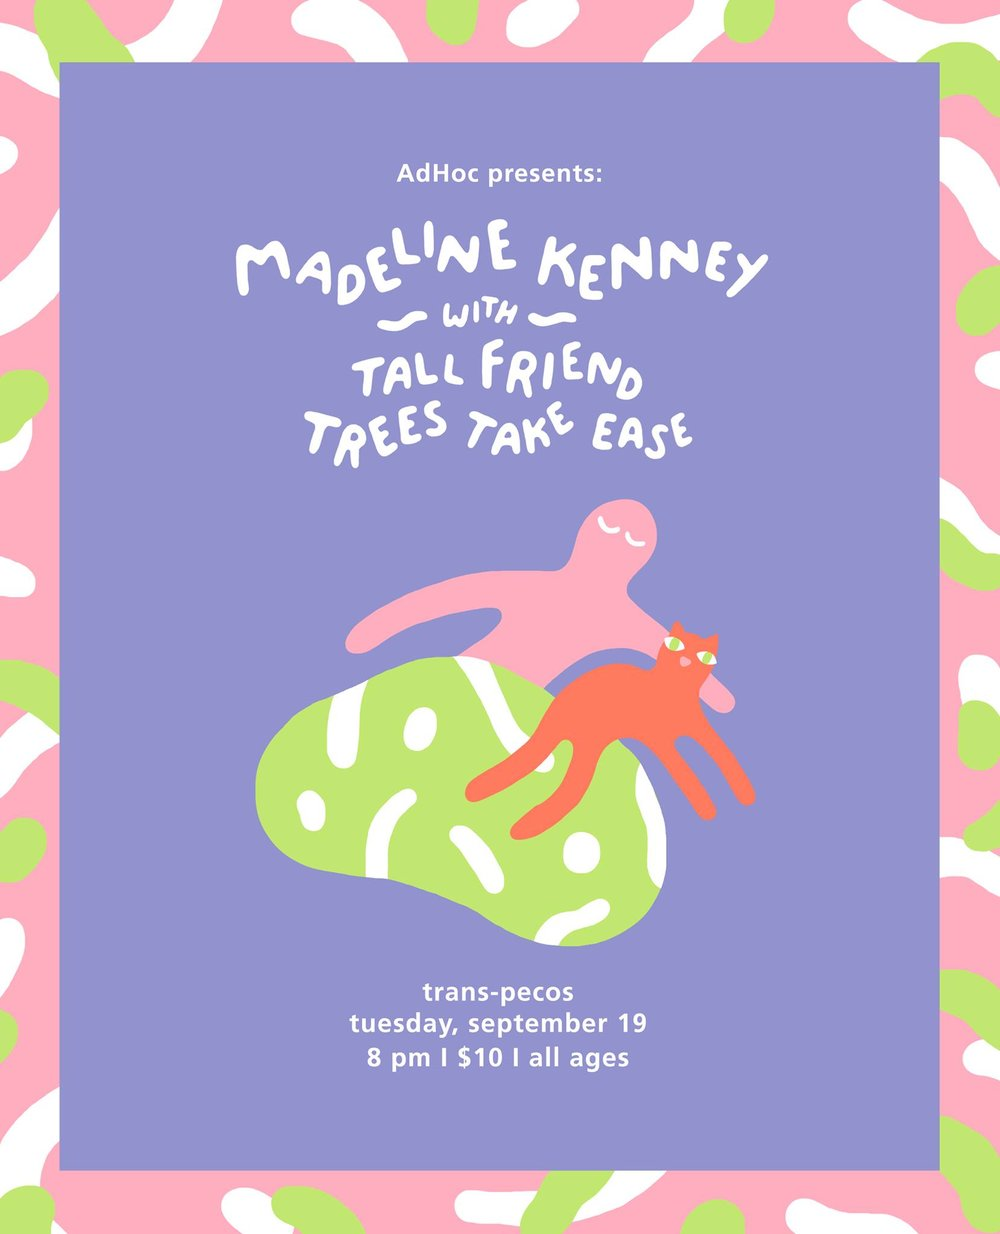 Tuesday Sep 19th @ Trans-Pecos AdHoc Presents Madeline Kenney Tall Friend Trees Take Ease L-Halsey, LM-Myrtle Wyckoff | 8pm | $10 | all ages